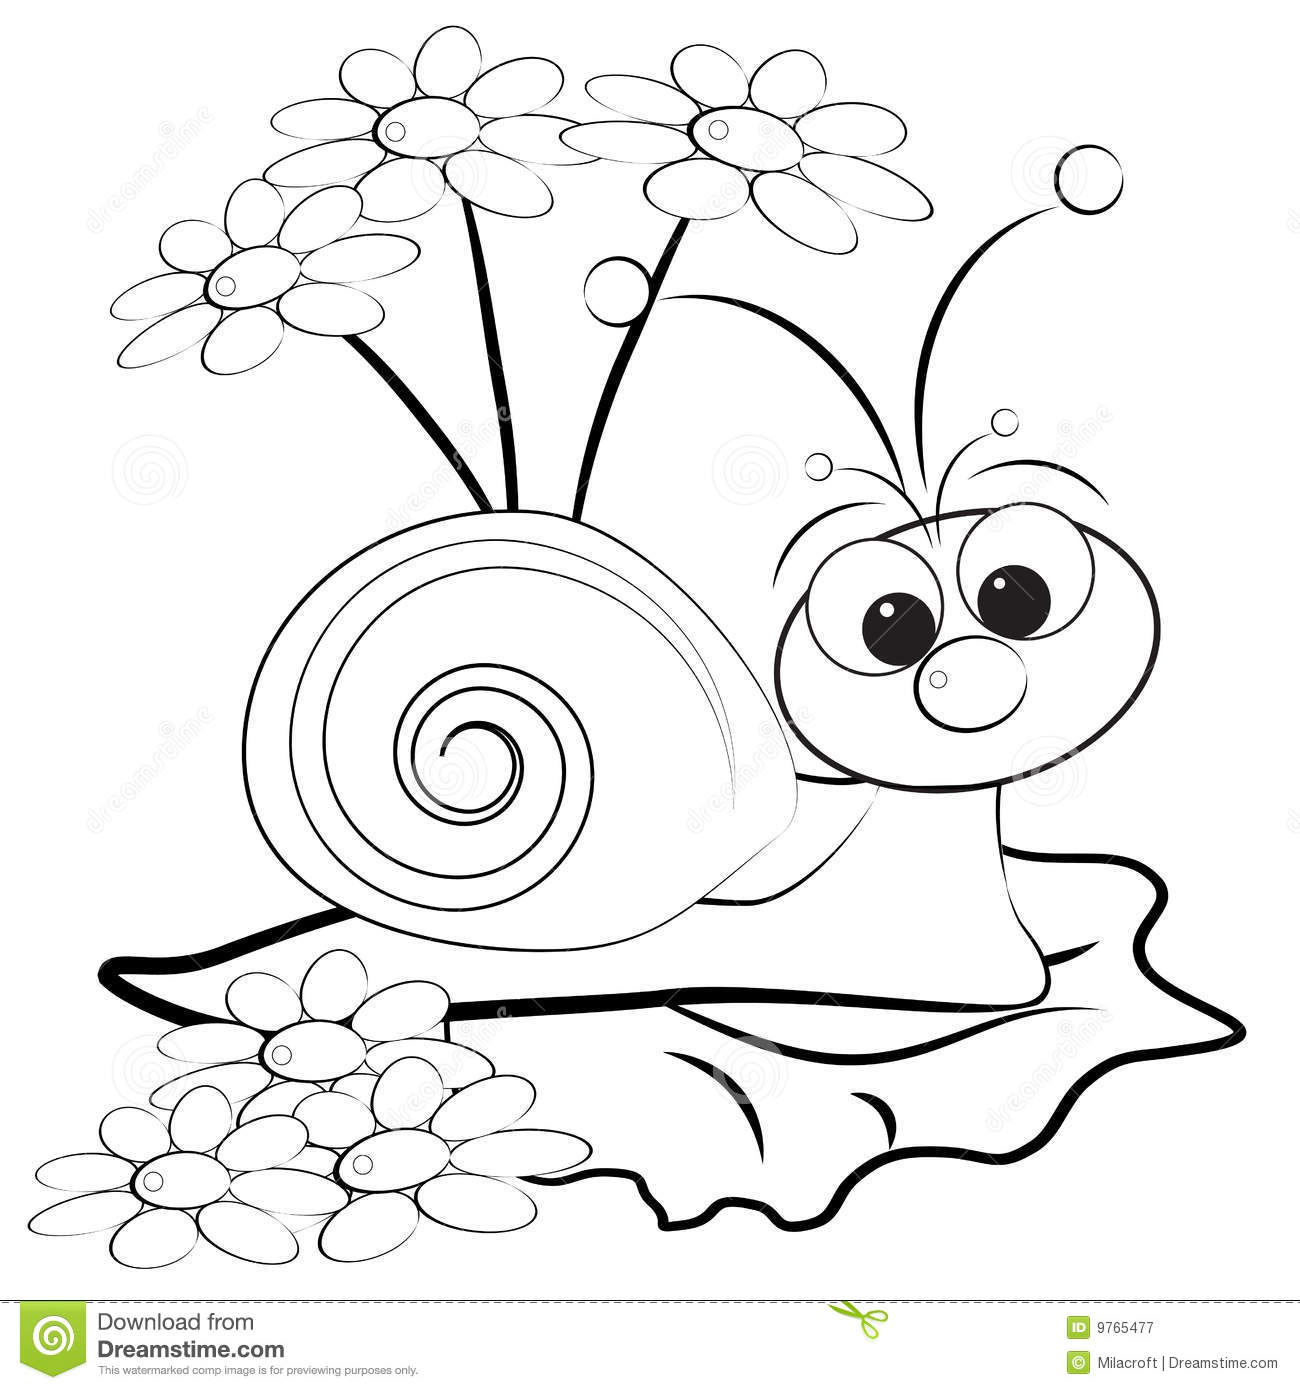 royalty free coloring pages - coloring page snail and daisy stock vector